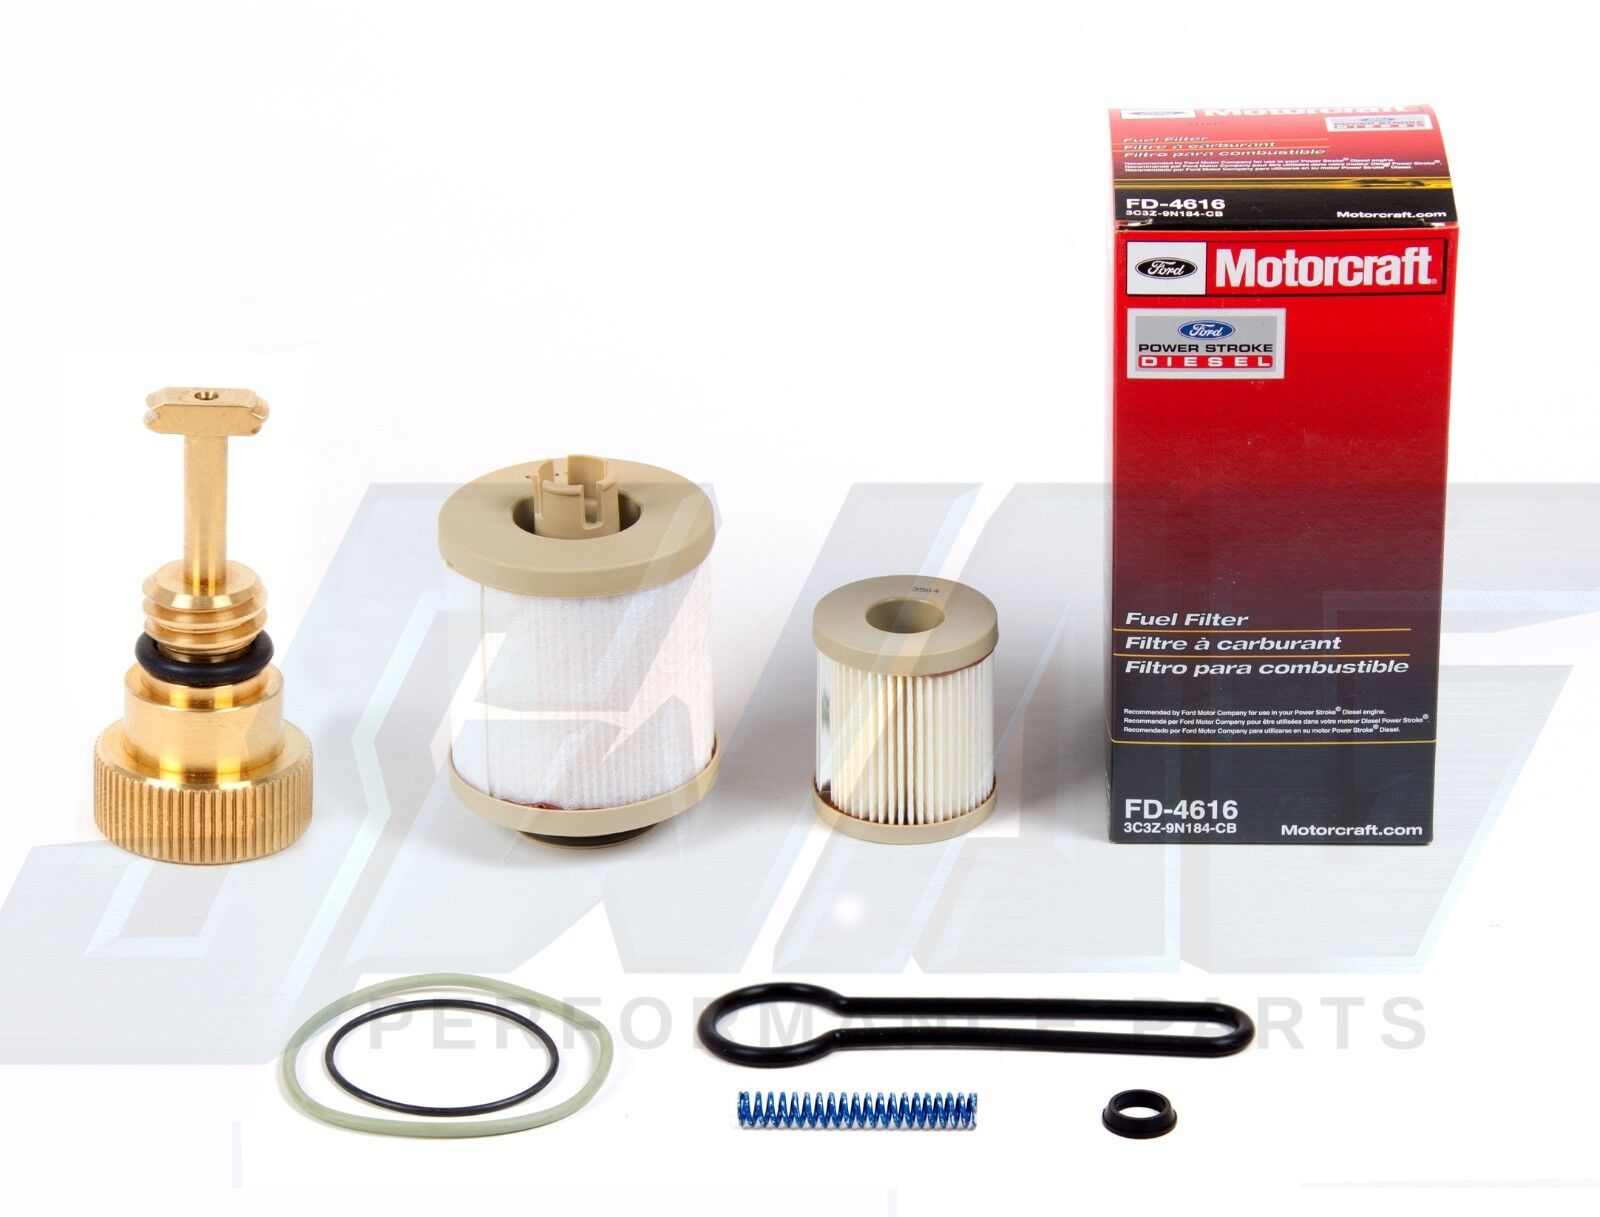 03-07 6.0L Powerstroke Diesel Motorcraft Fuel Filter Drain Plug Blue Spring  Kit